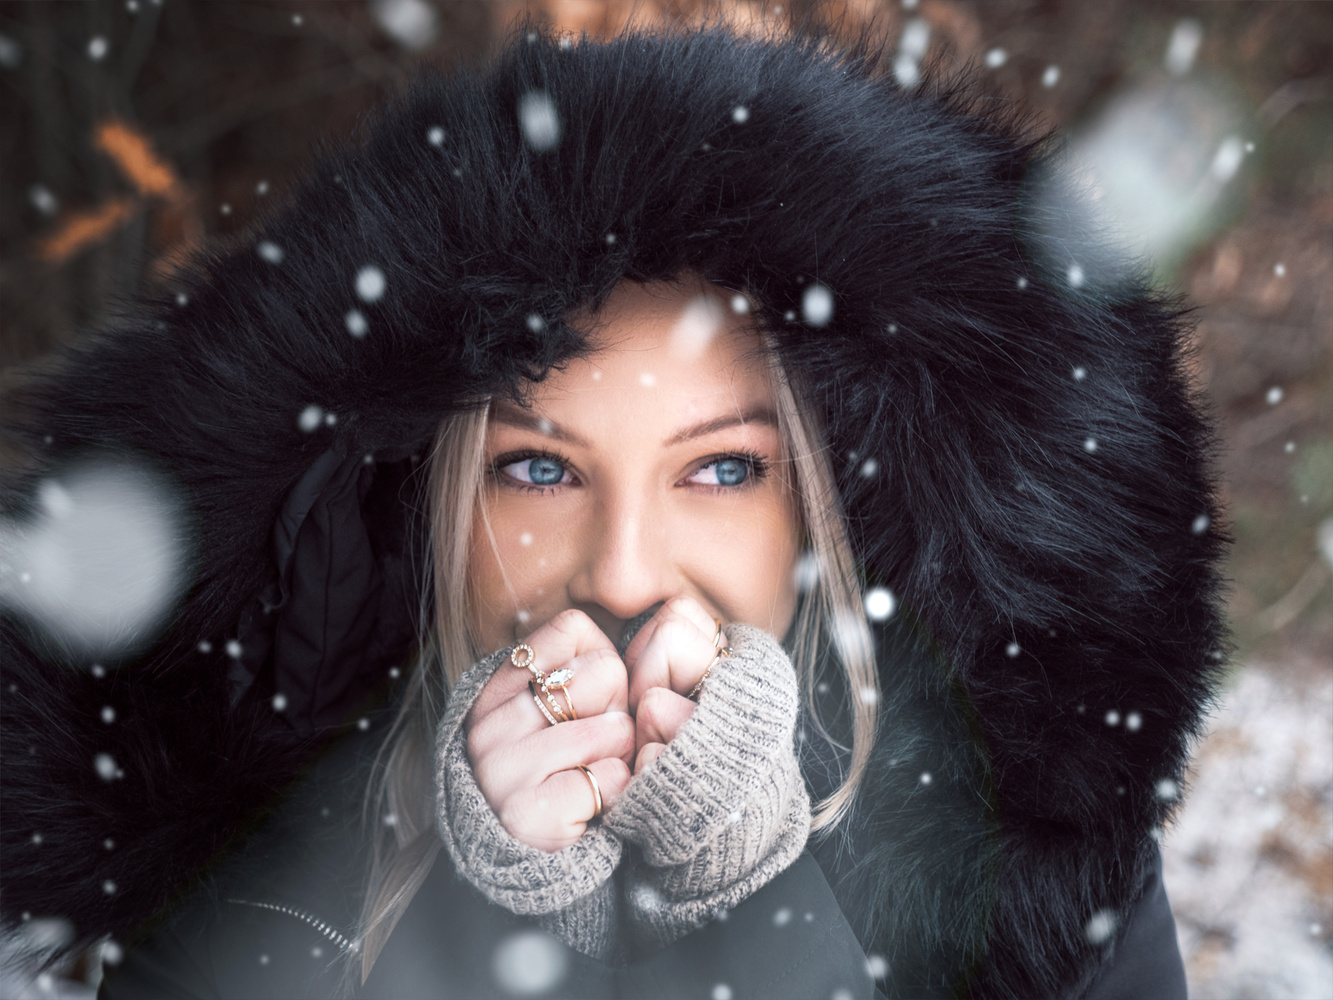 Portrait of Em in the snow  by Logan Armstrong